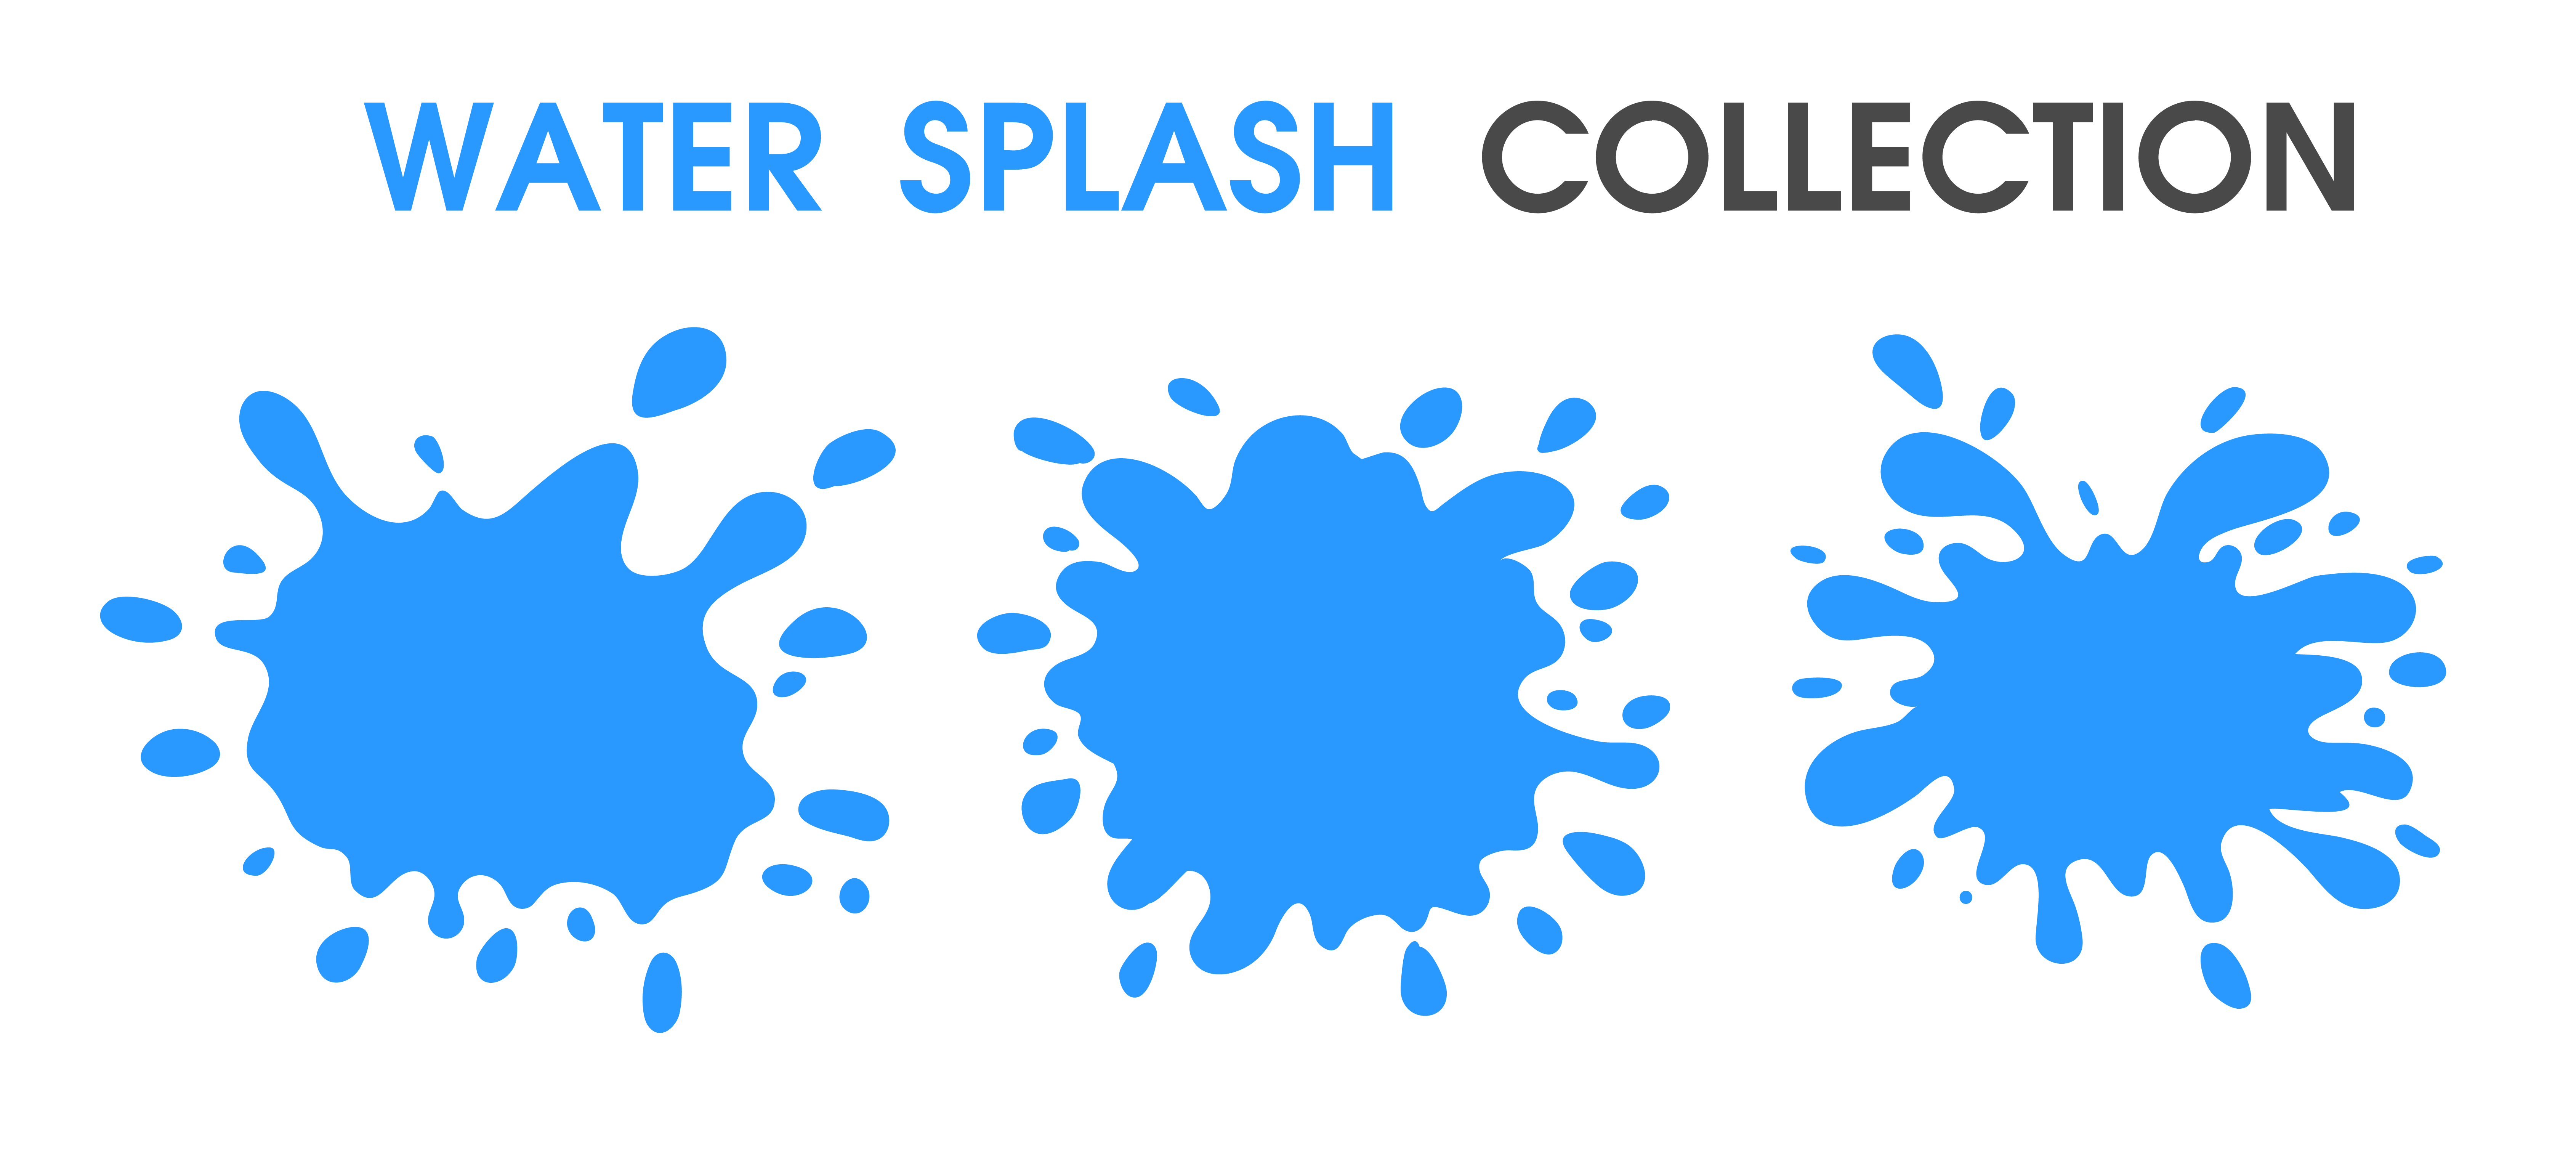 Water Splash collection simple cartoon style. - Download ...